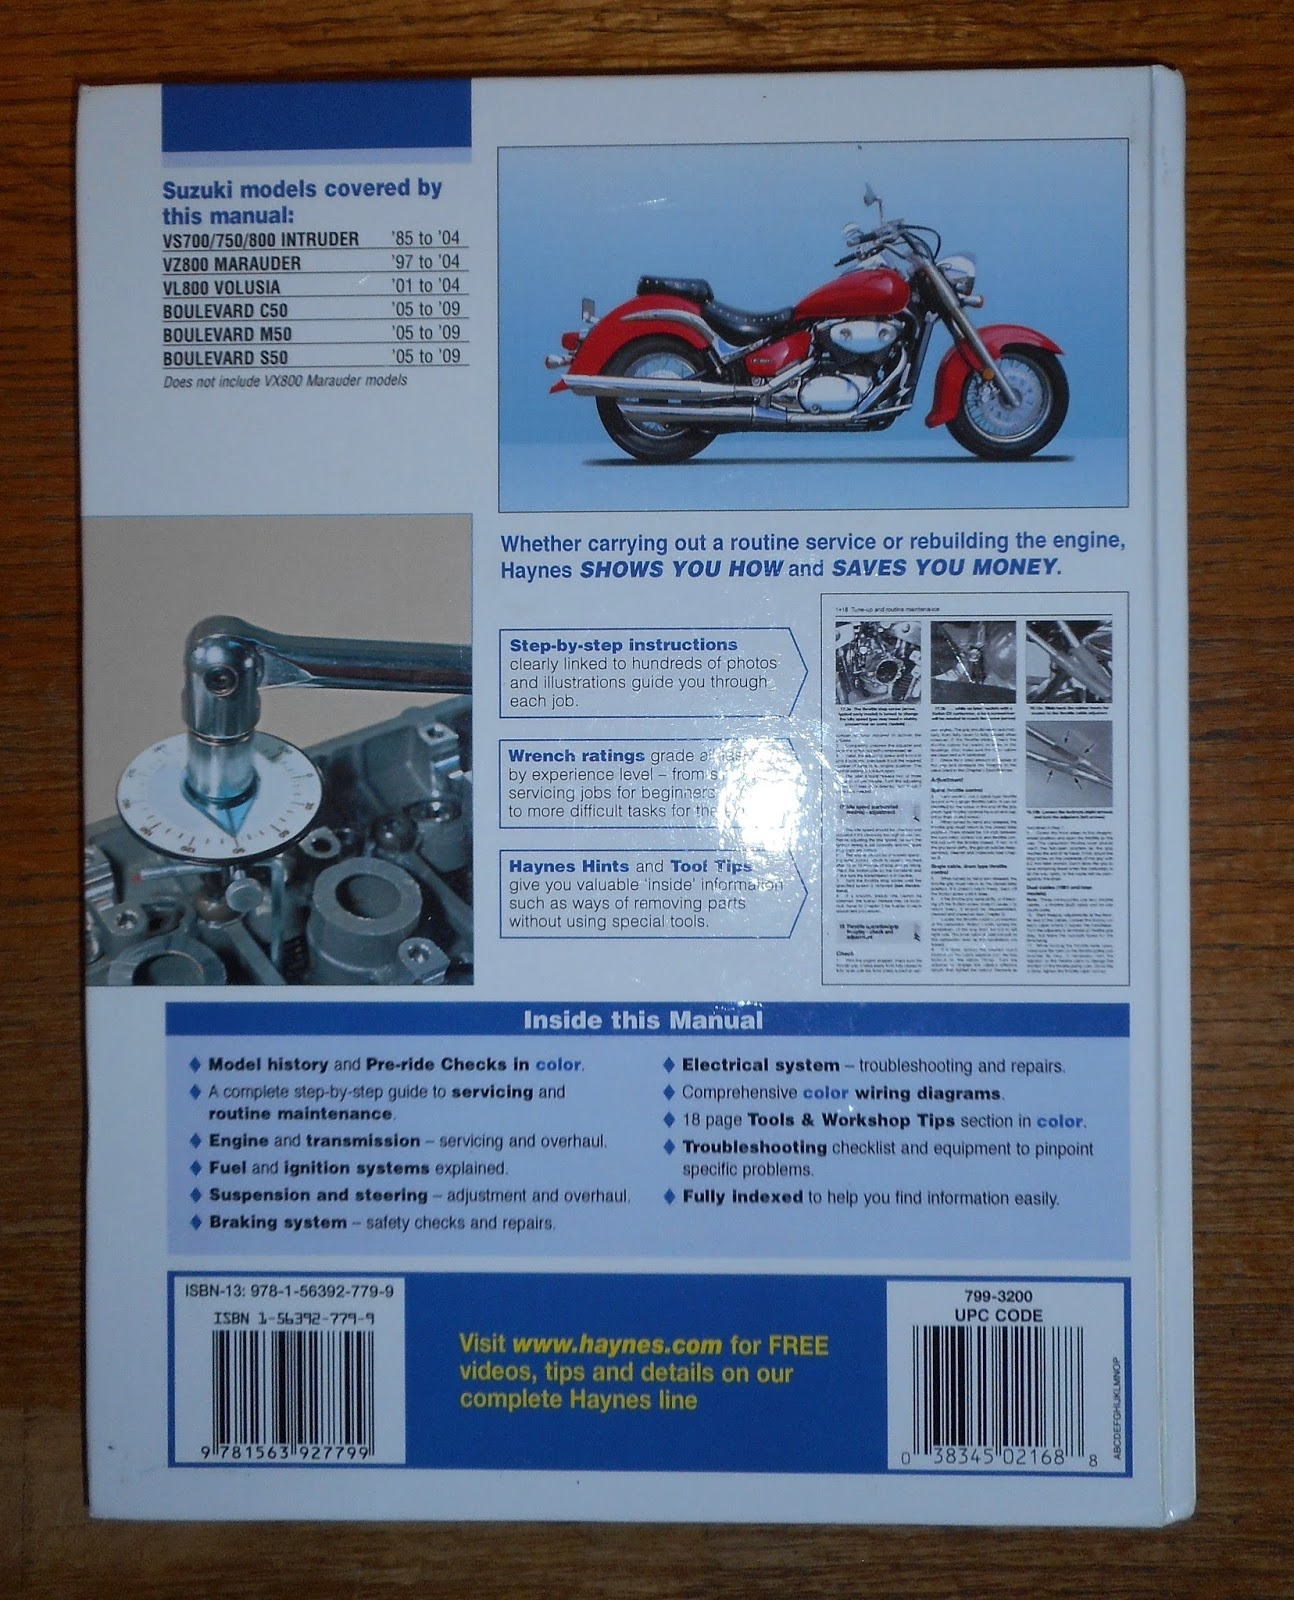 medium resolution of 1996 suzuki intruder 1400 wiring diagram nemetas aufgegabelt infowiring diagram for 1996 suzuki intruder 1400